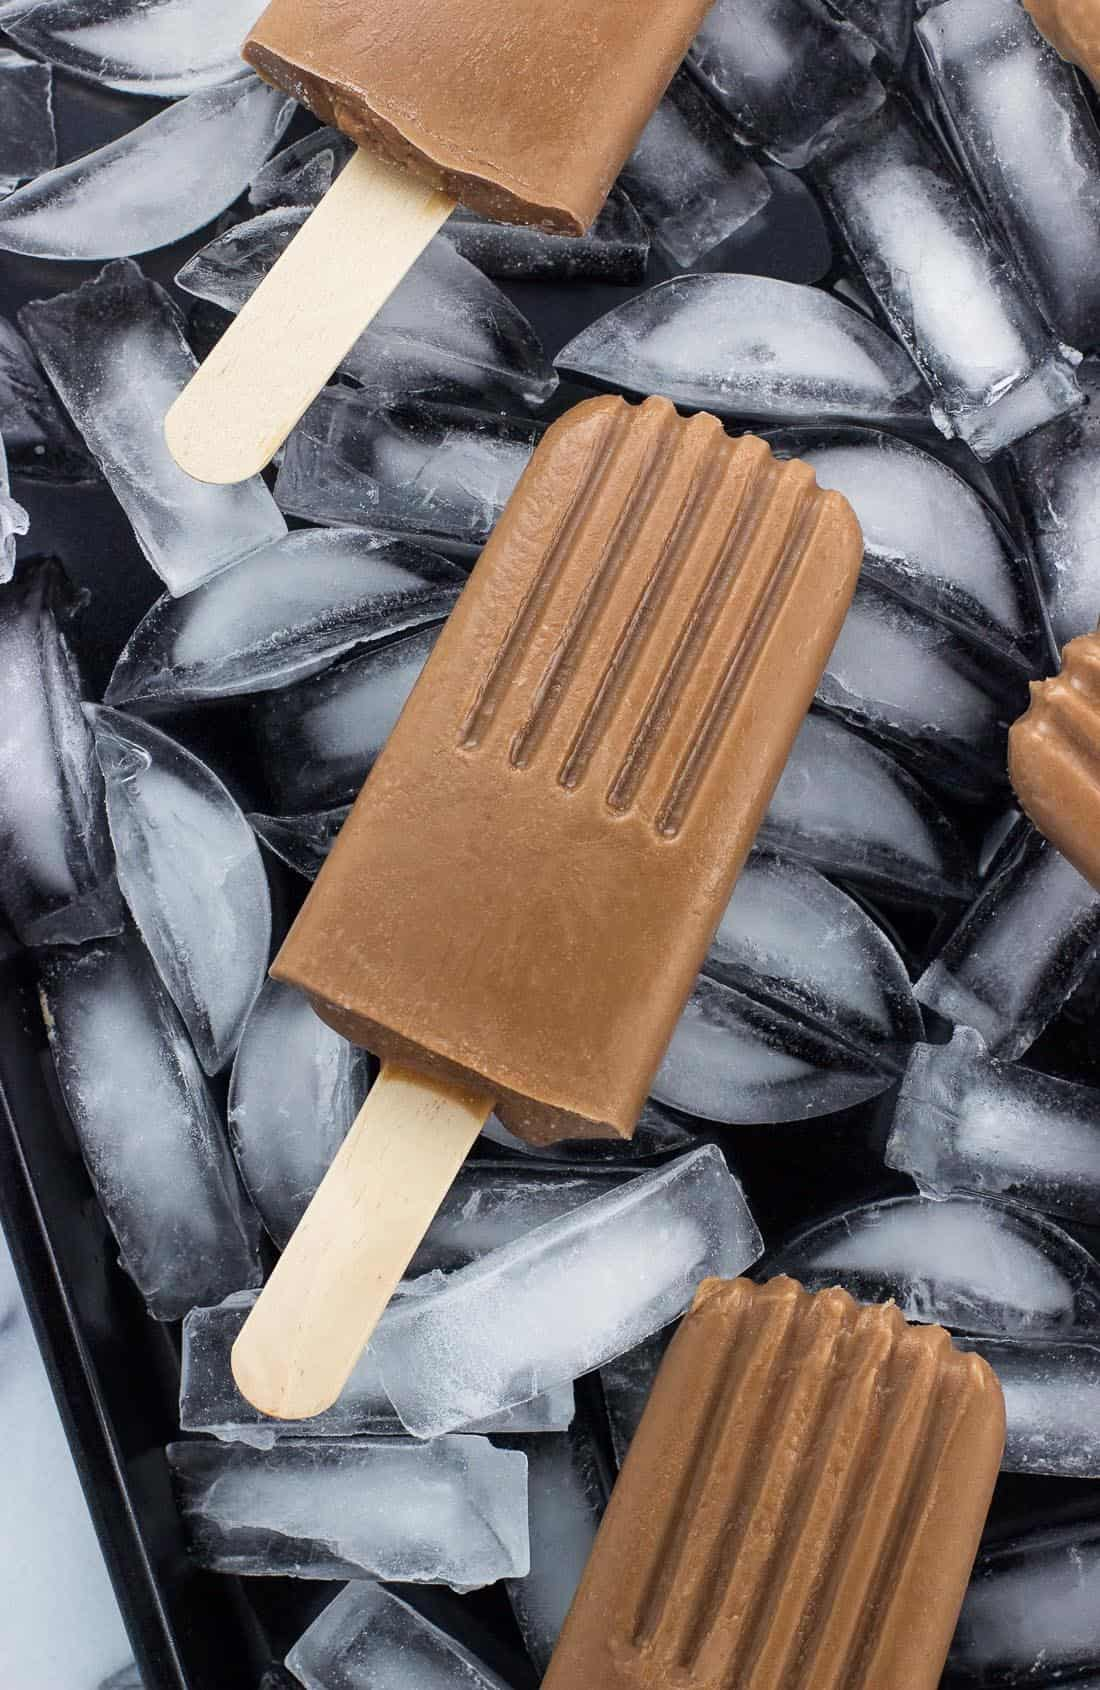 Dairy-free fudgesicles are creamy and so easy to make at home! This chocolate fudge pop recipe is made using a mix of coconut milk and almond milk for a better-for-you dairy-free popsicle treat.